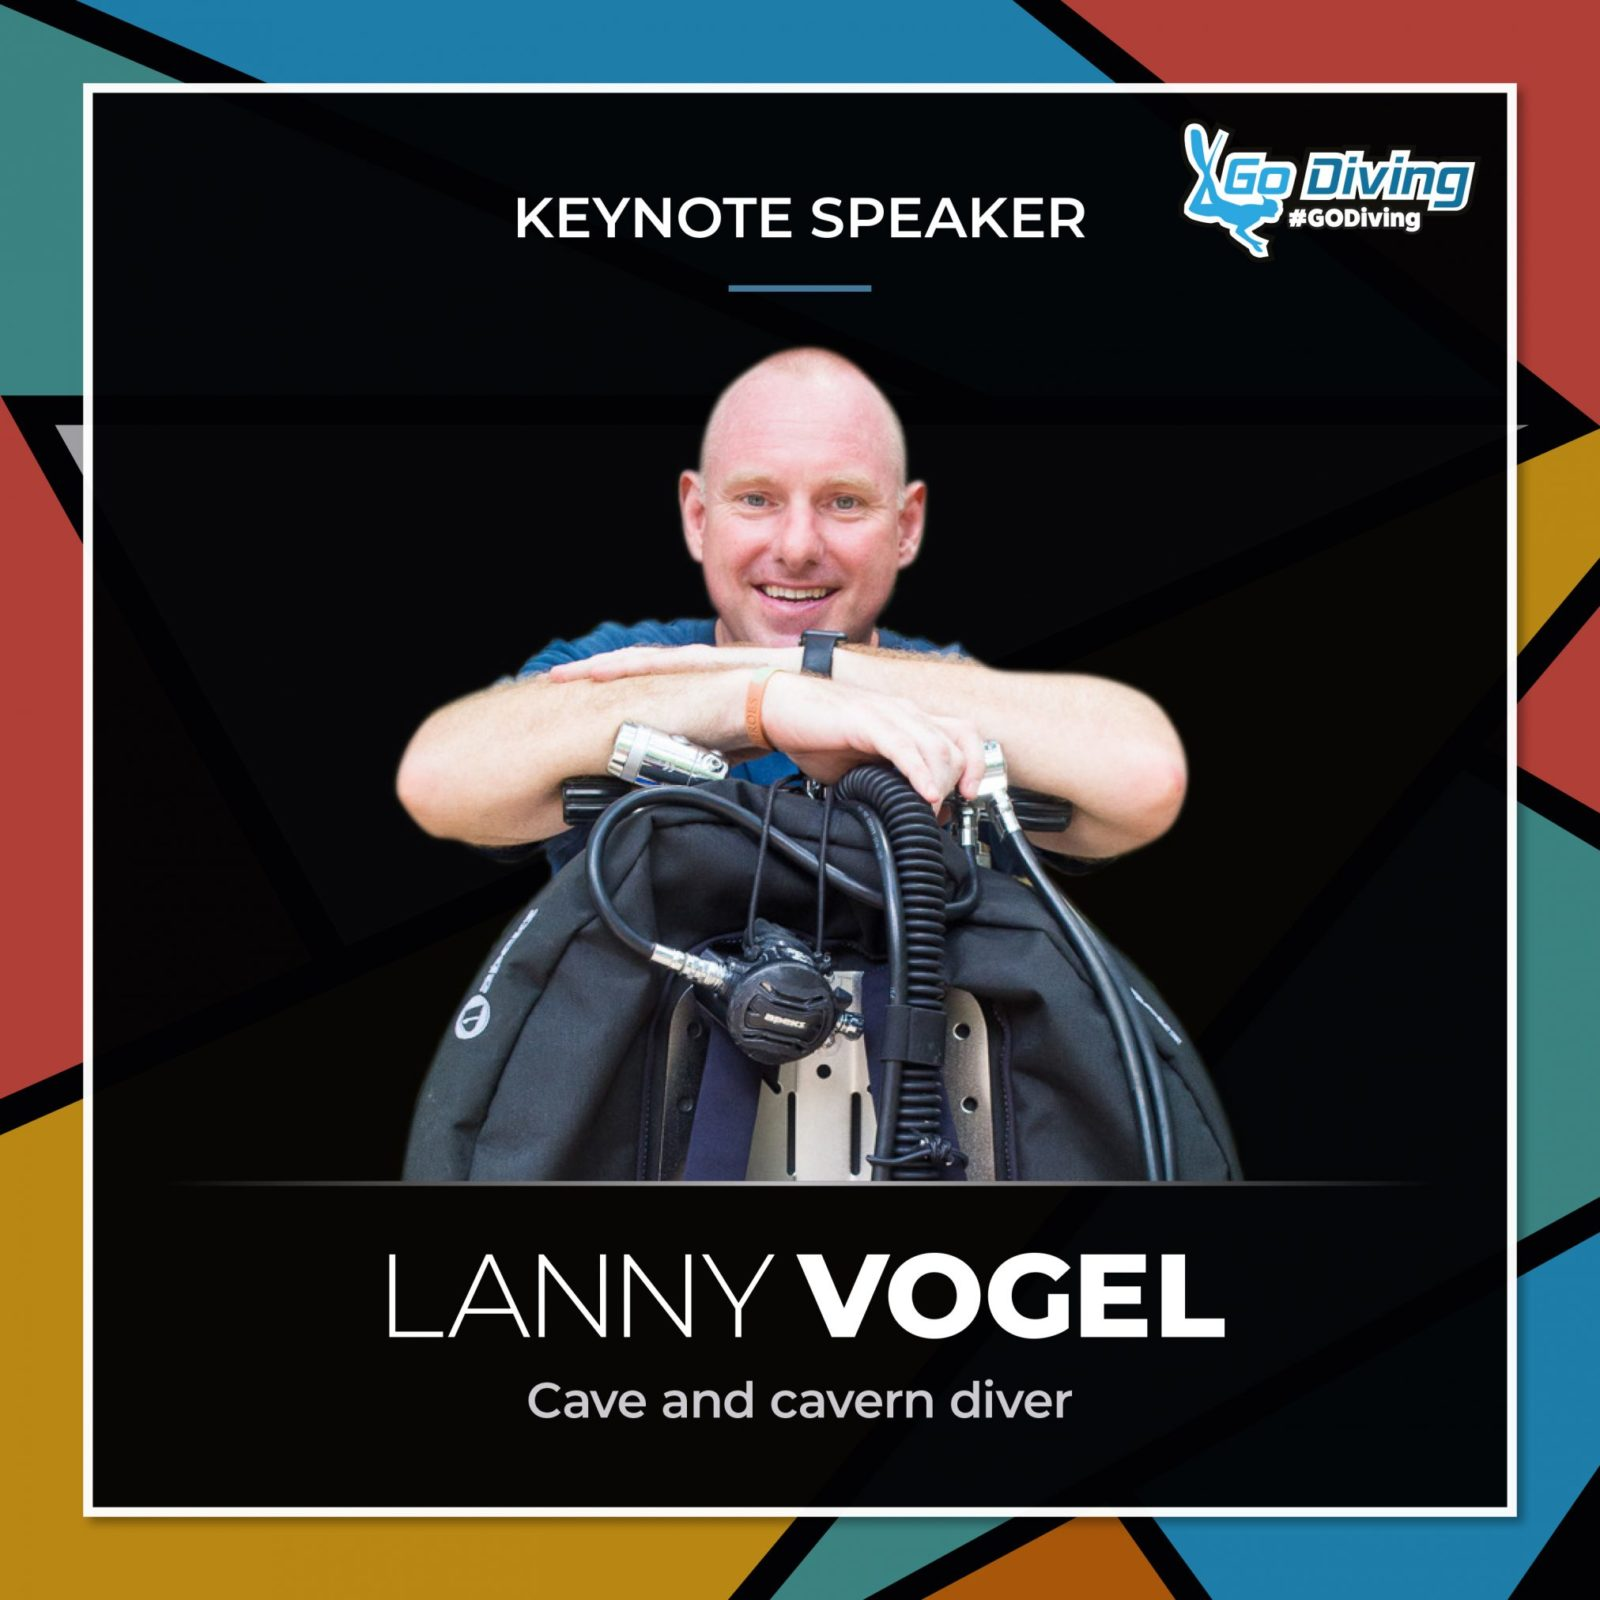 GO Diving Show Speaker Profile - Lanny Vogel 3